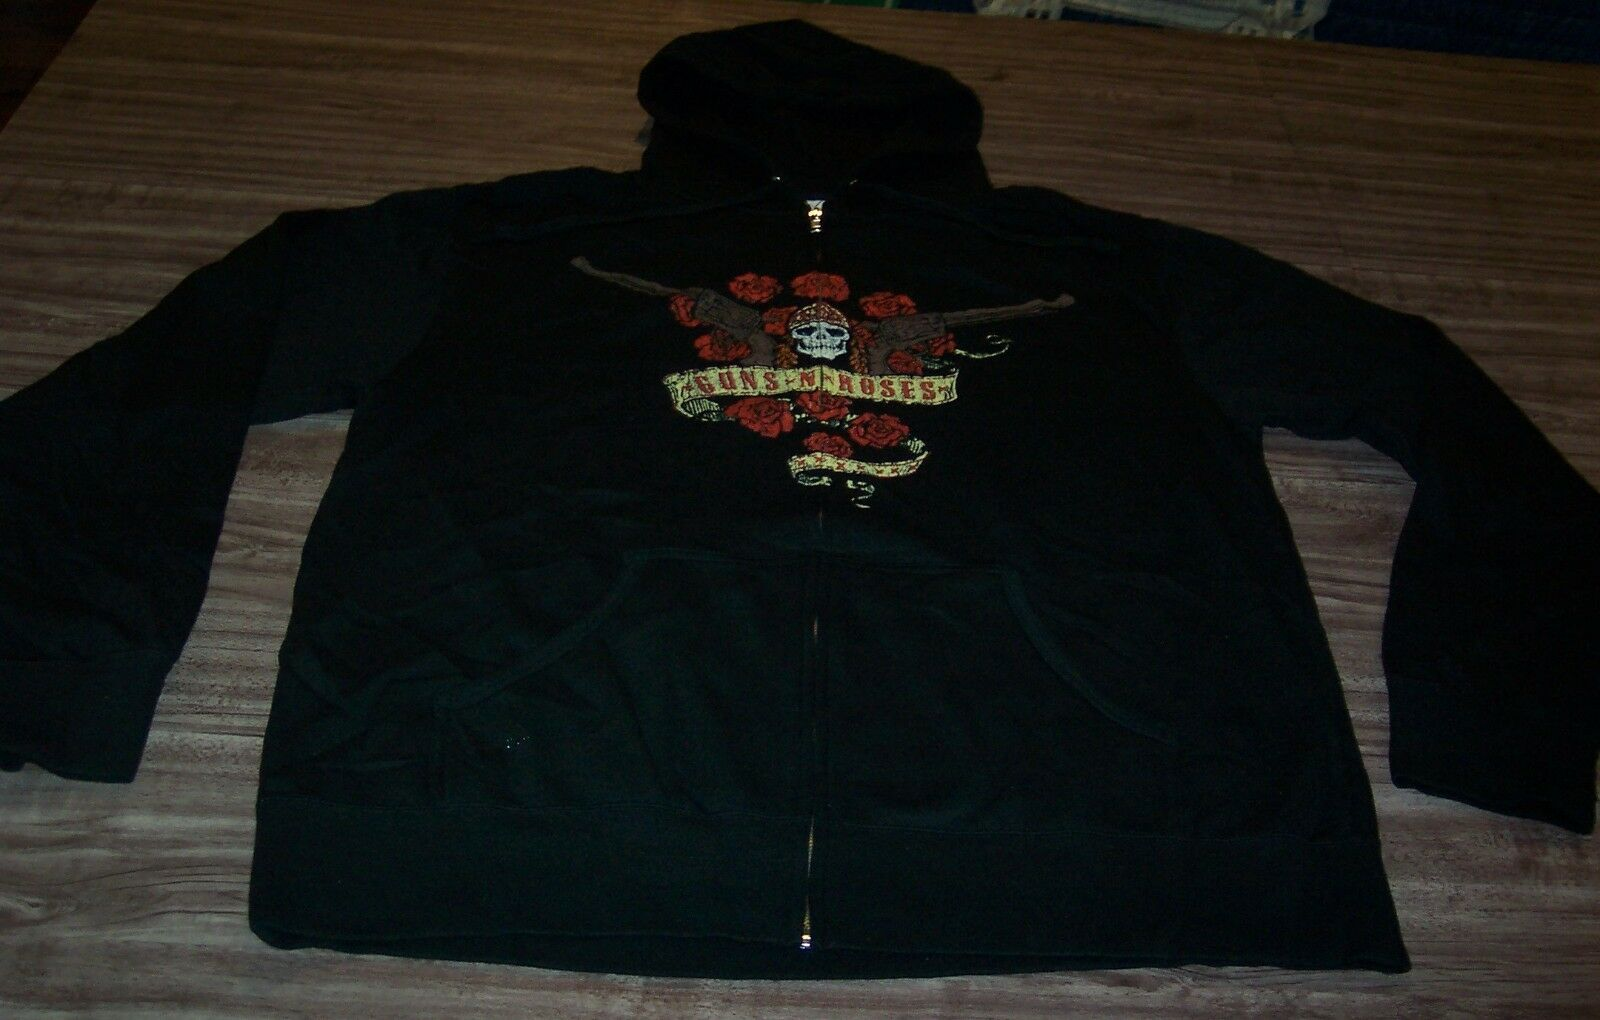 VINTAGE STYLE GUNS N ROSES Band ZIPPERDOWN HOODIE HOODED Sweatshirt 2XL XXL NEW